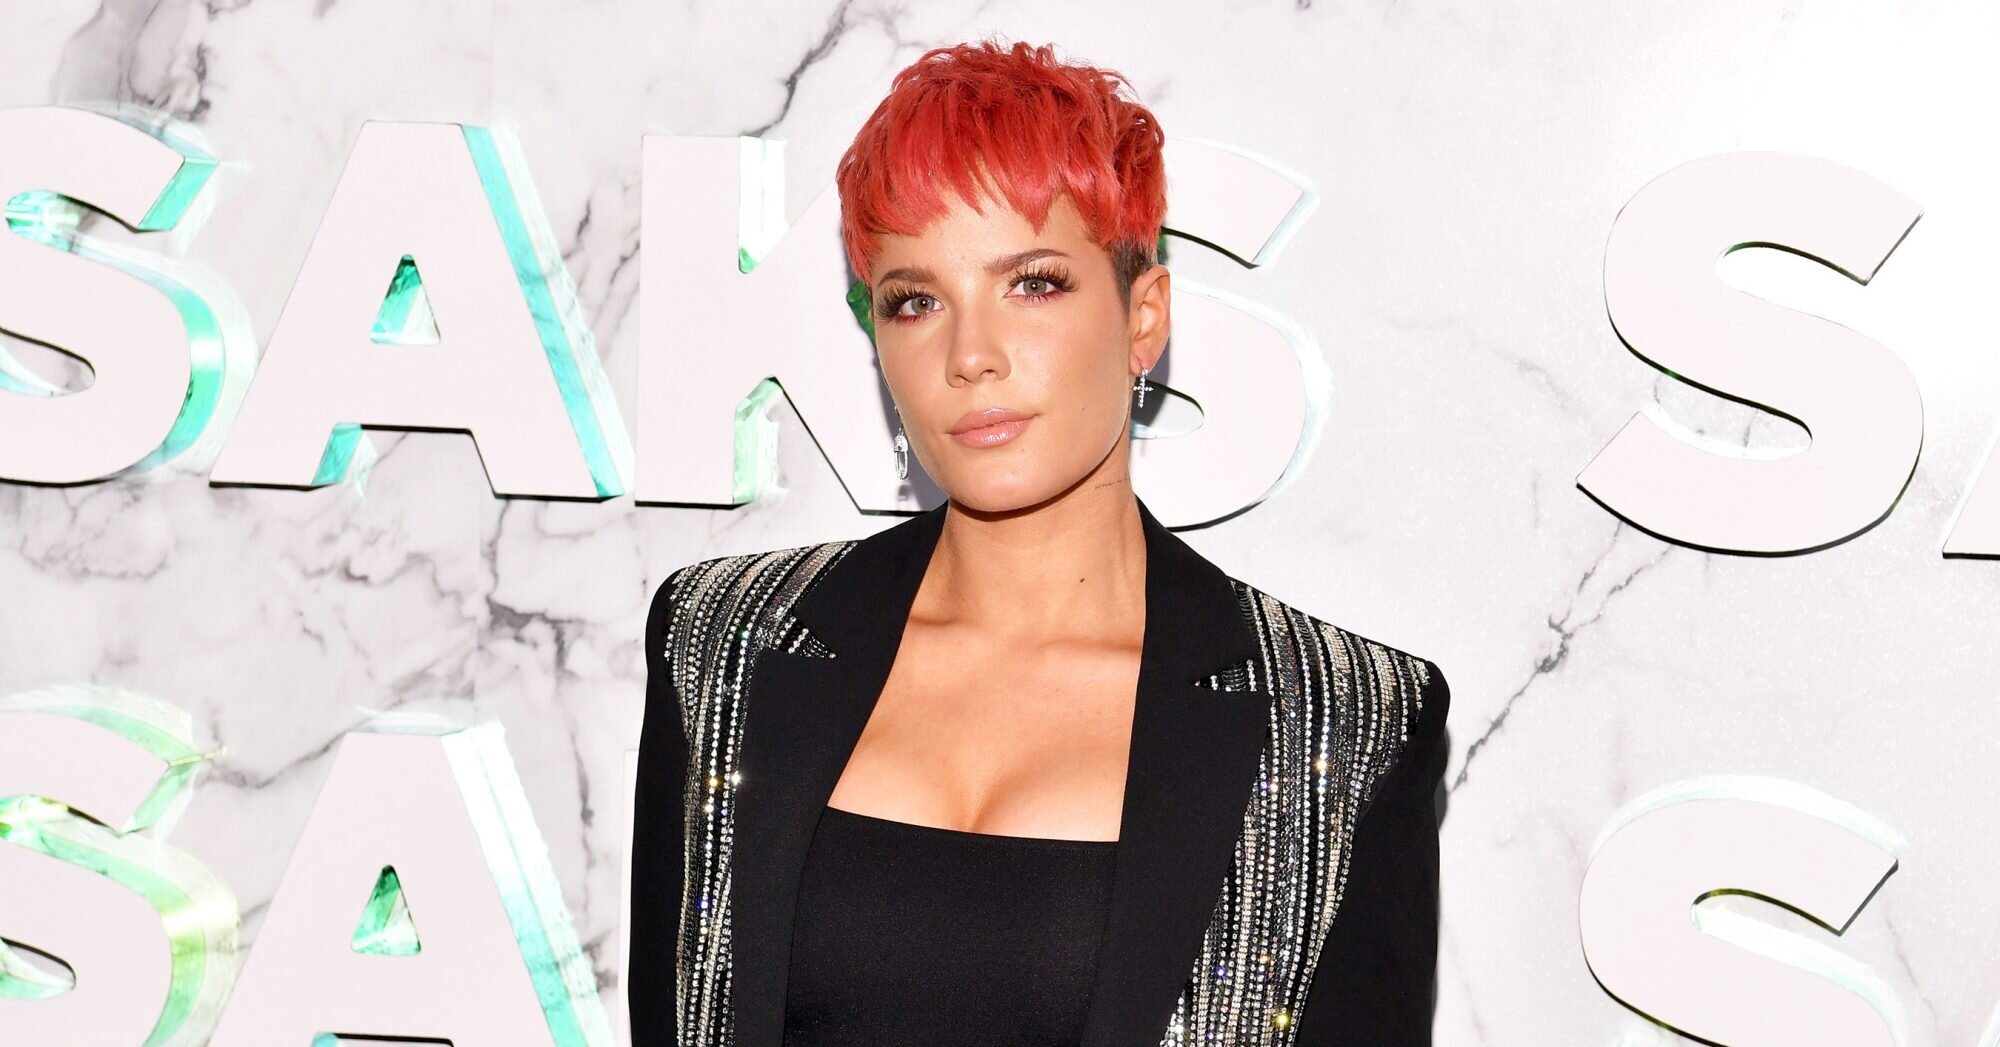 Halsey Explains Why She Changed Her Name: 'I Felt That Ashley Didn't Deserve to Be Famous'